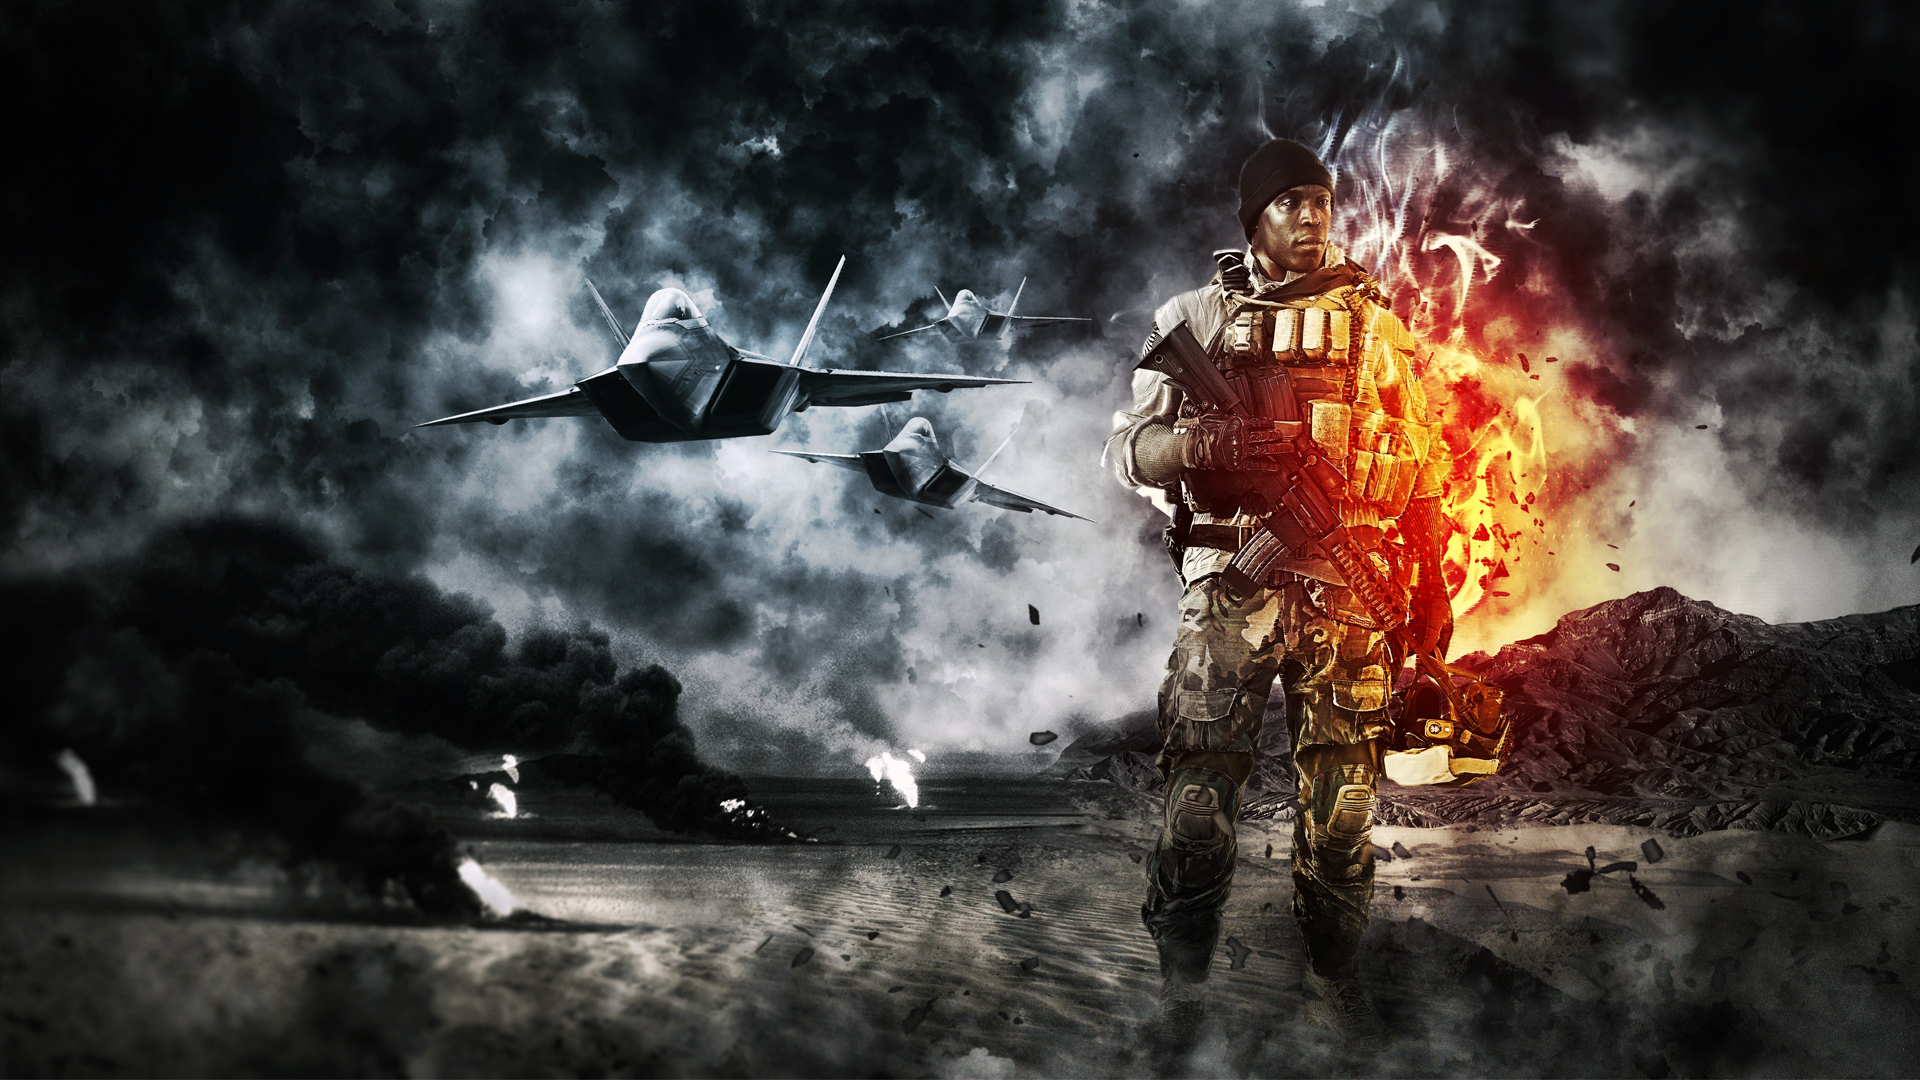 Artwork-Battlefield-I-must-admit-this-looks-sweet-wallpaper-wp3602744